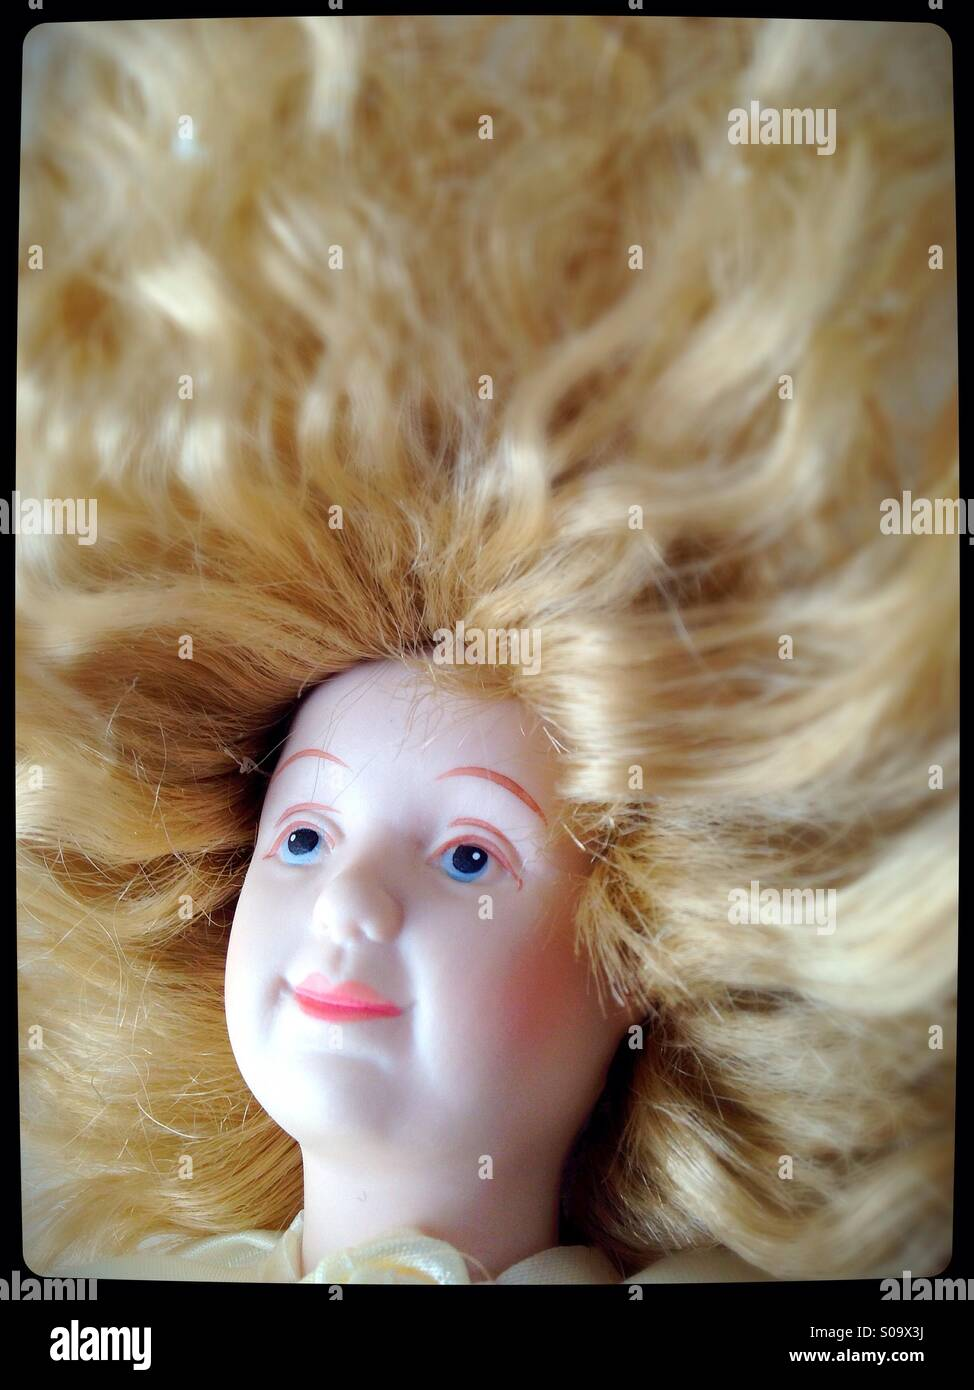 A doll with thick blond hair. - Stock Image